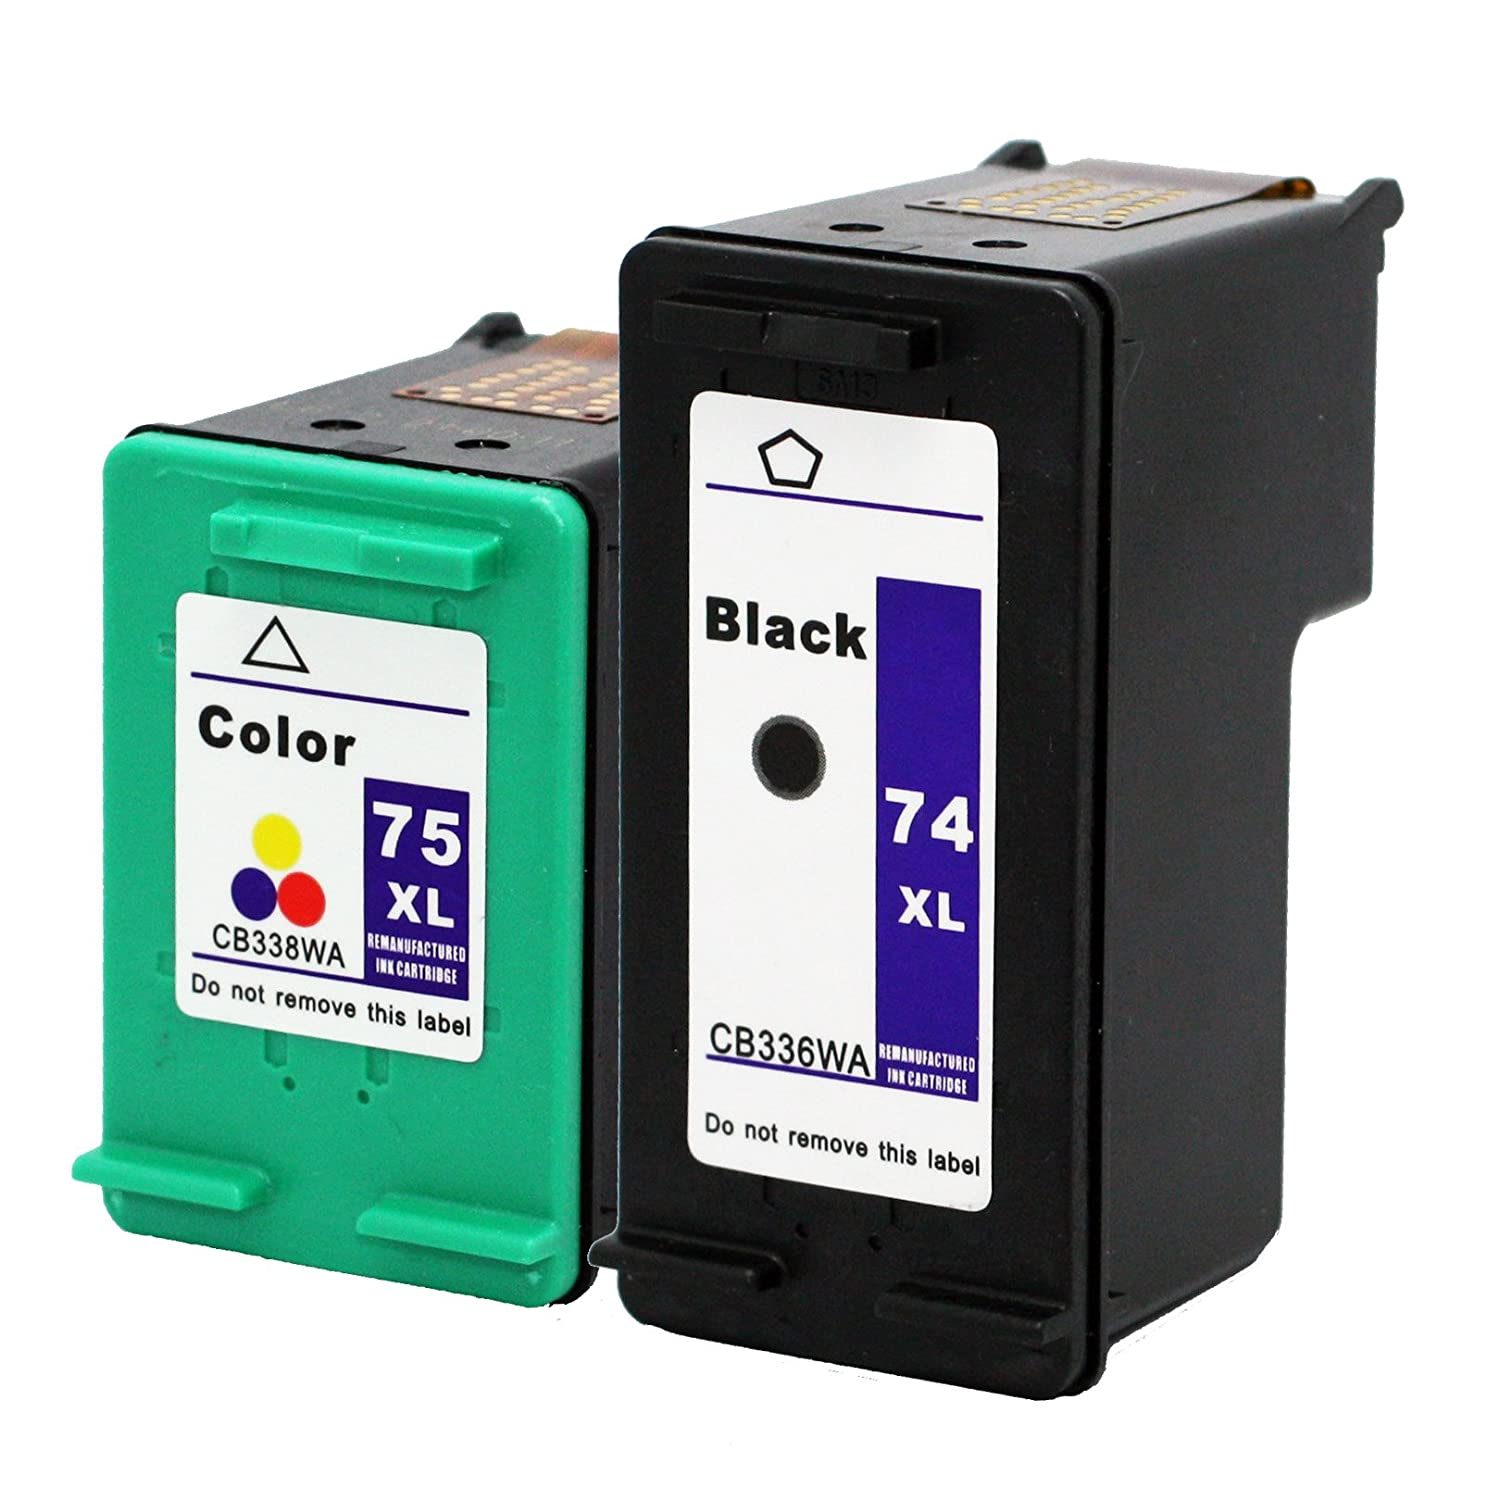 Color printing bu - Amazon Com Remanufactured Ink Cartridge Replacement For Hp 74xl 75xl 1 Black 1 Color 2 Pack Electronics